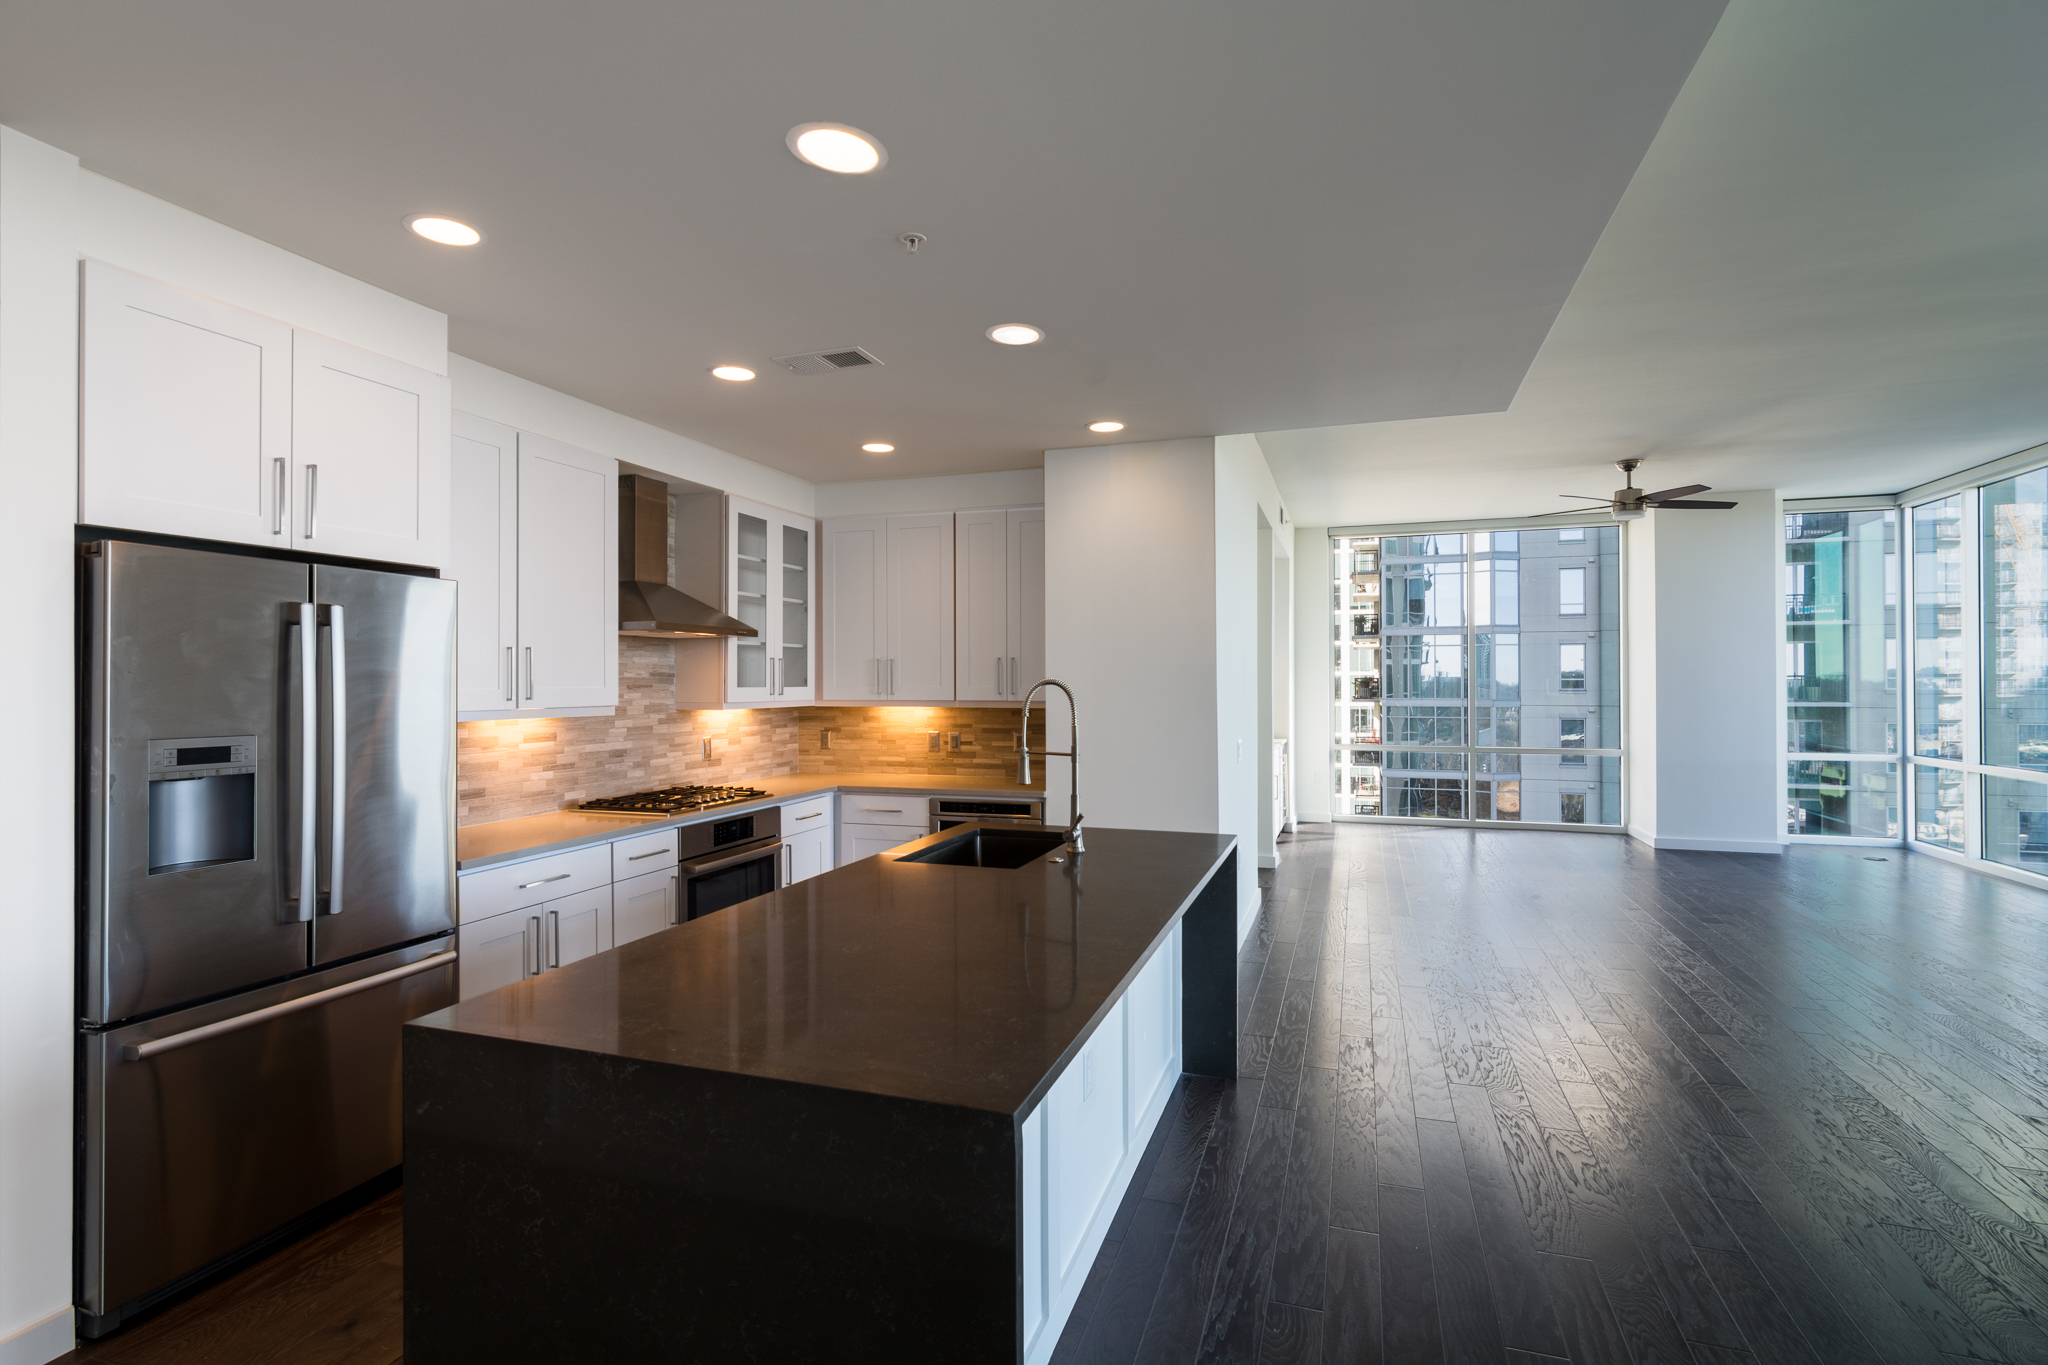 A large kitchen with dark quartz countertops, opening to a large glassy room with dark wood floors.